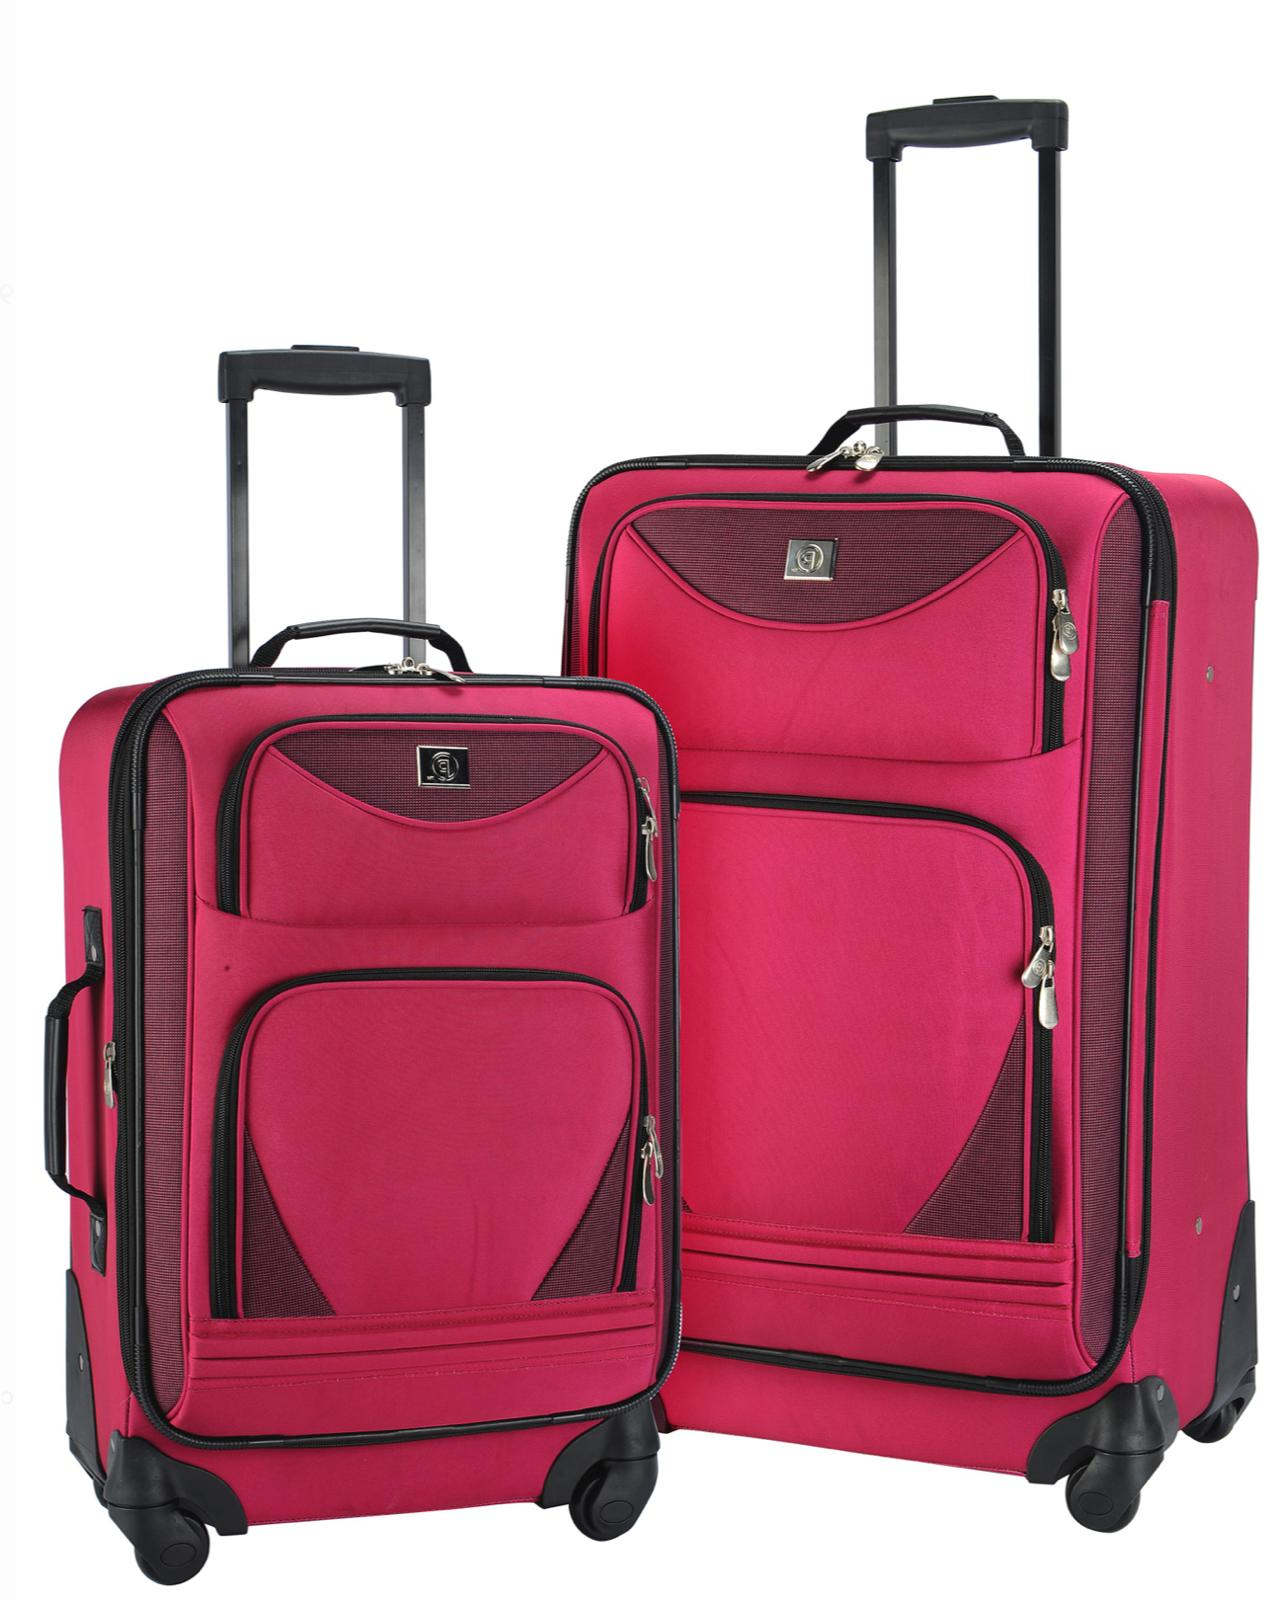 2 piece expandable spinner set travel luggage